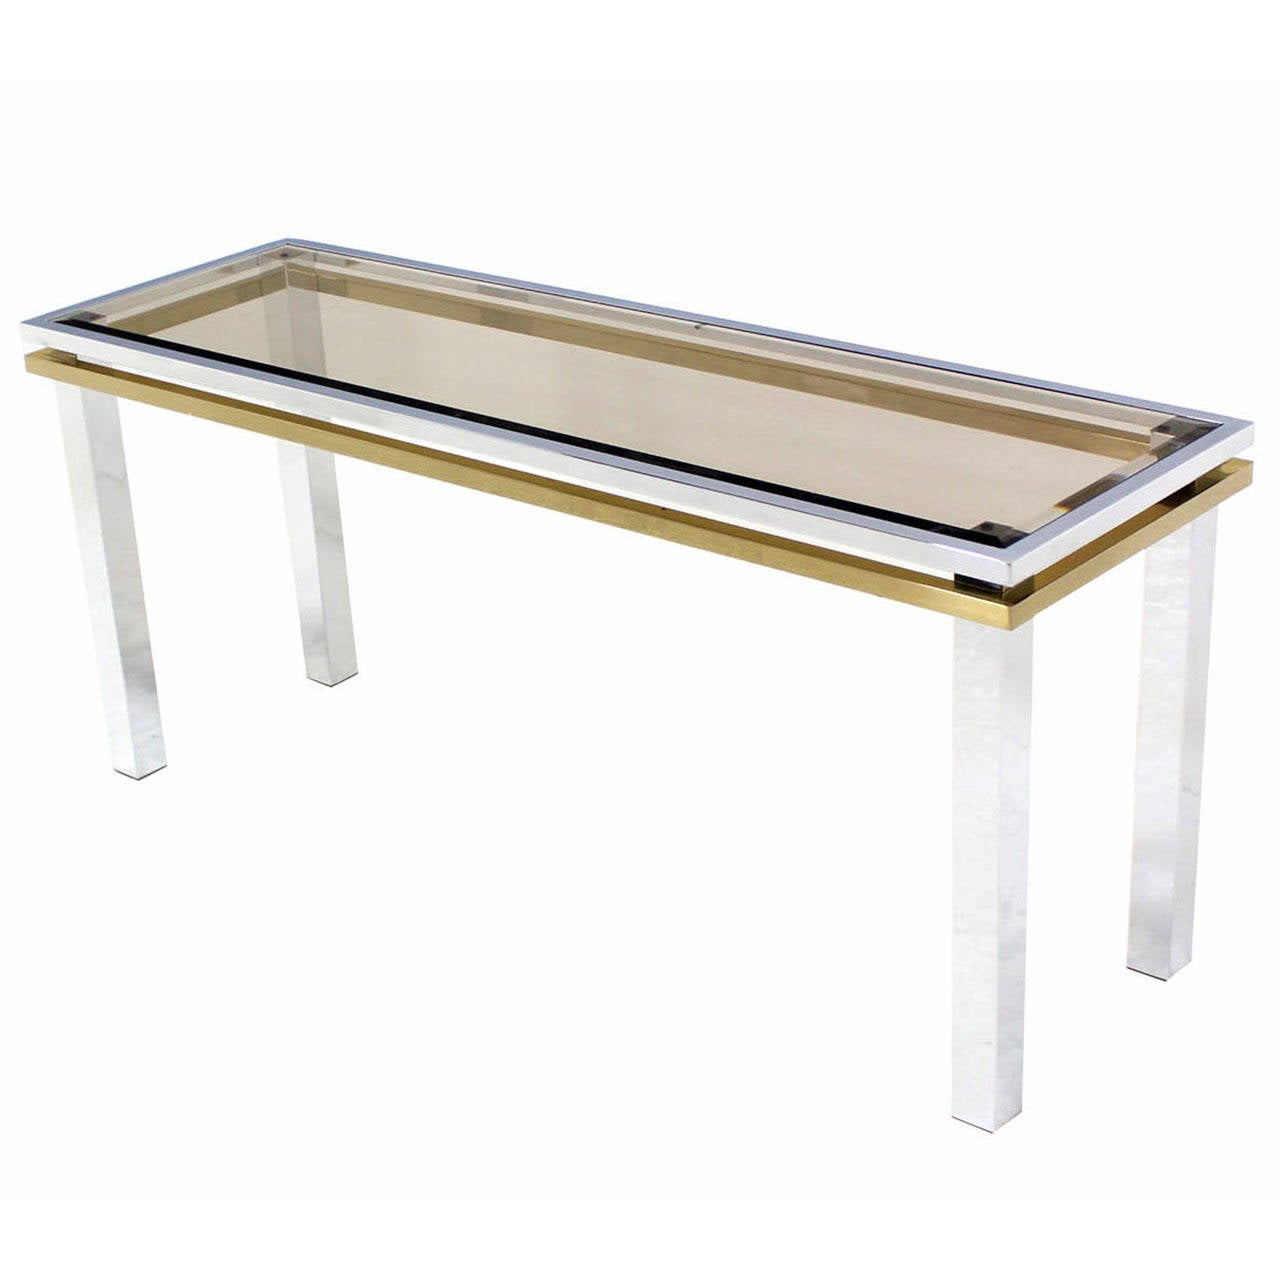 Chrome, Brass, And Glass Mid-Century Modern Console Table